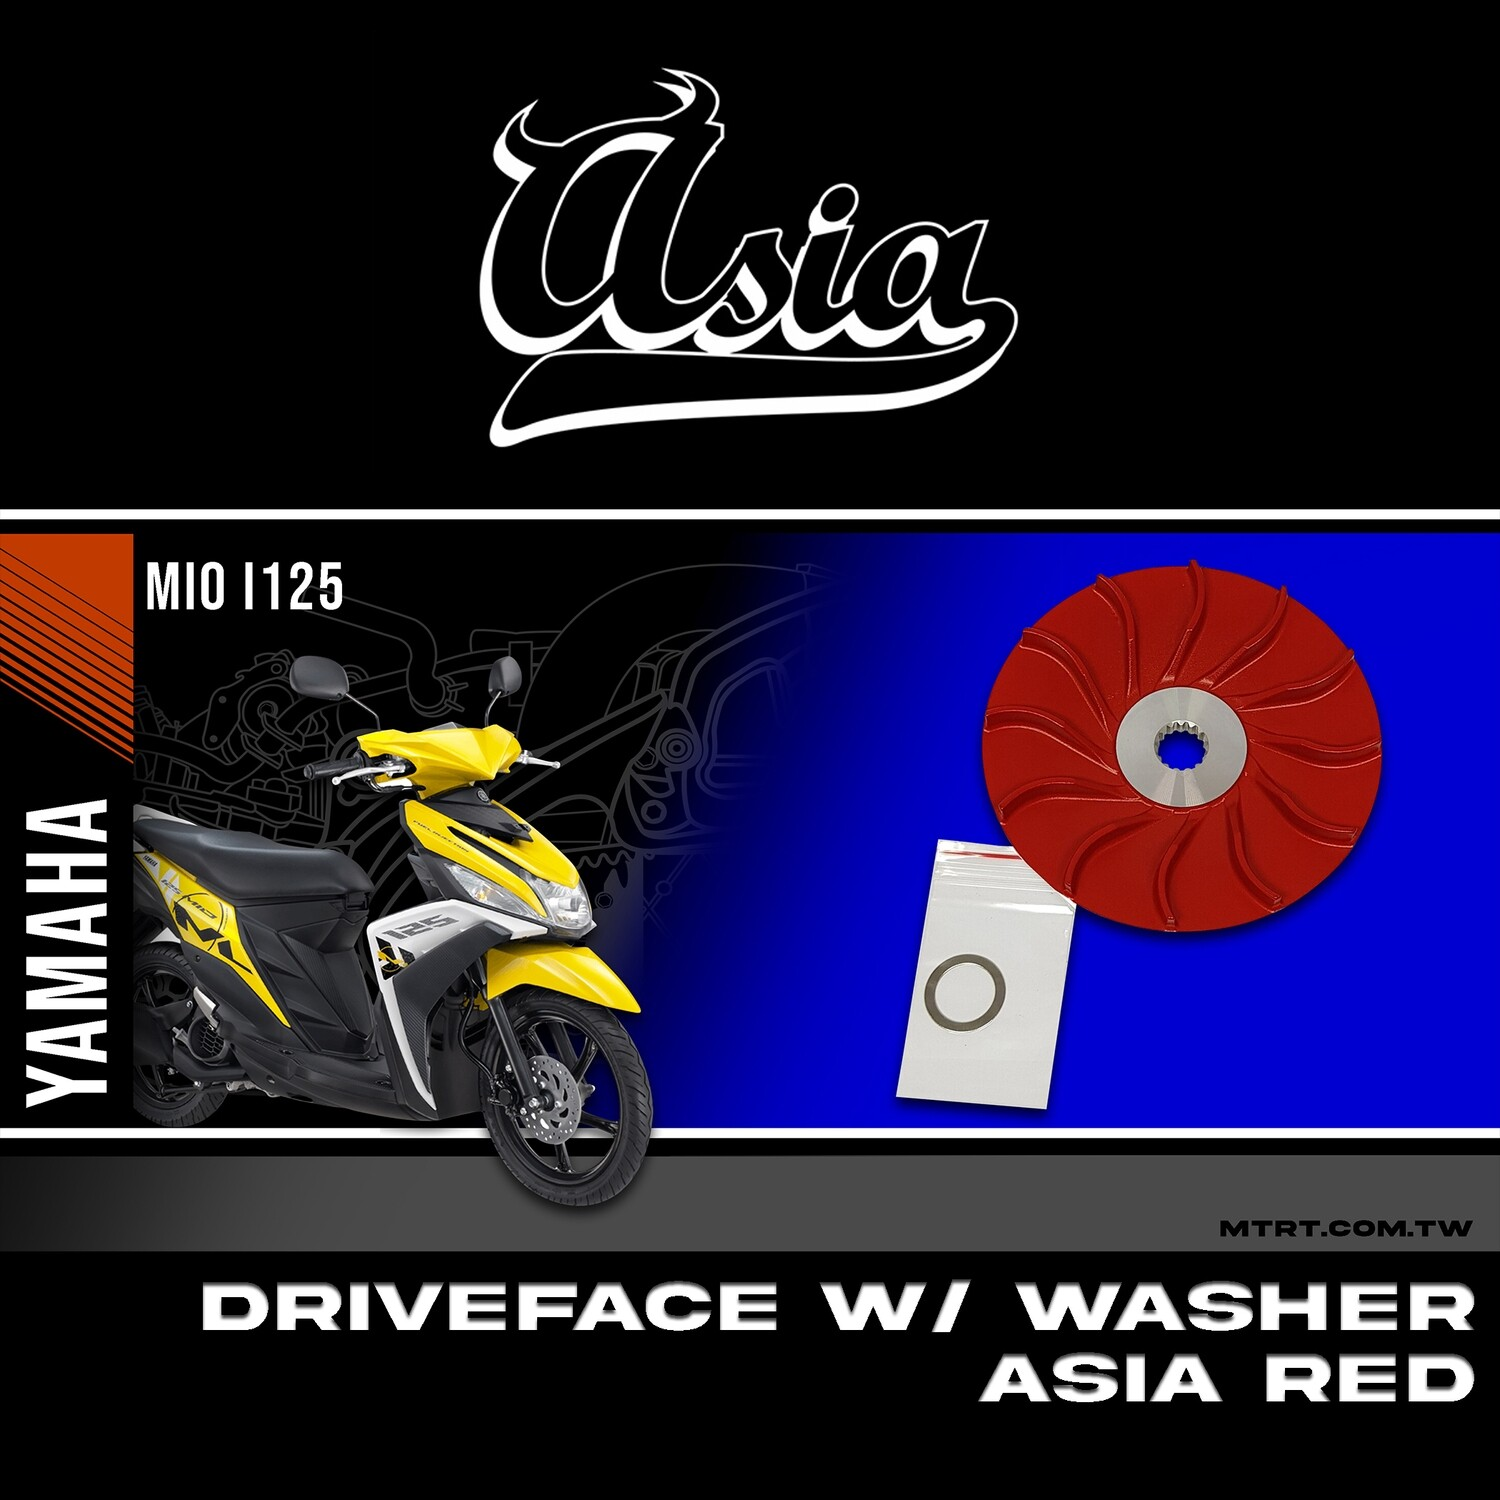 DRIVE FACE WITH WASHER MIOi125 ASIA RED